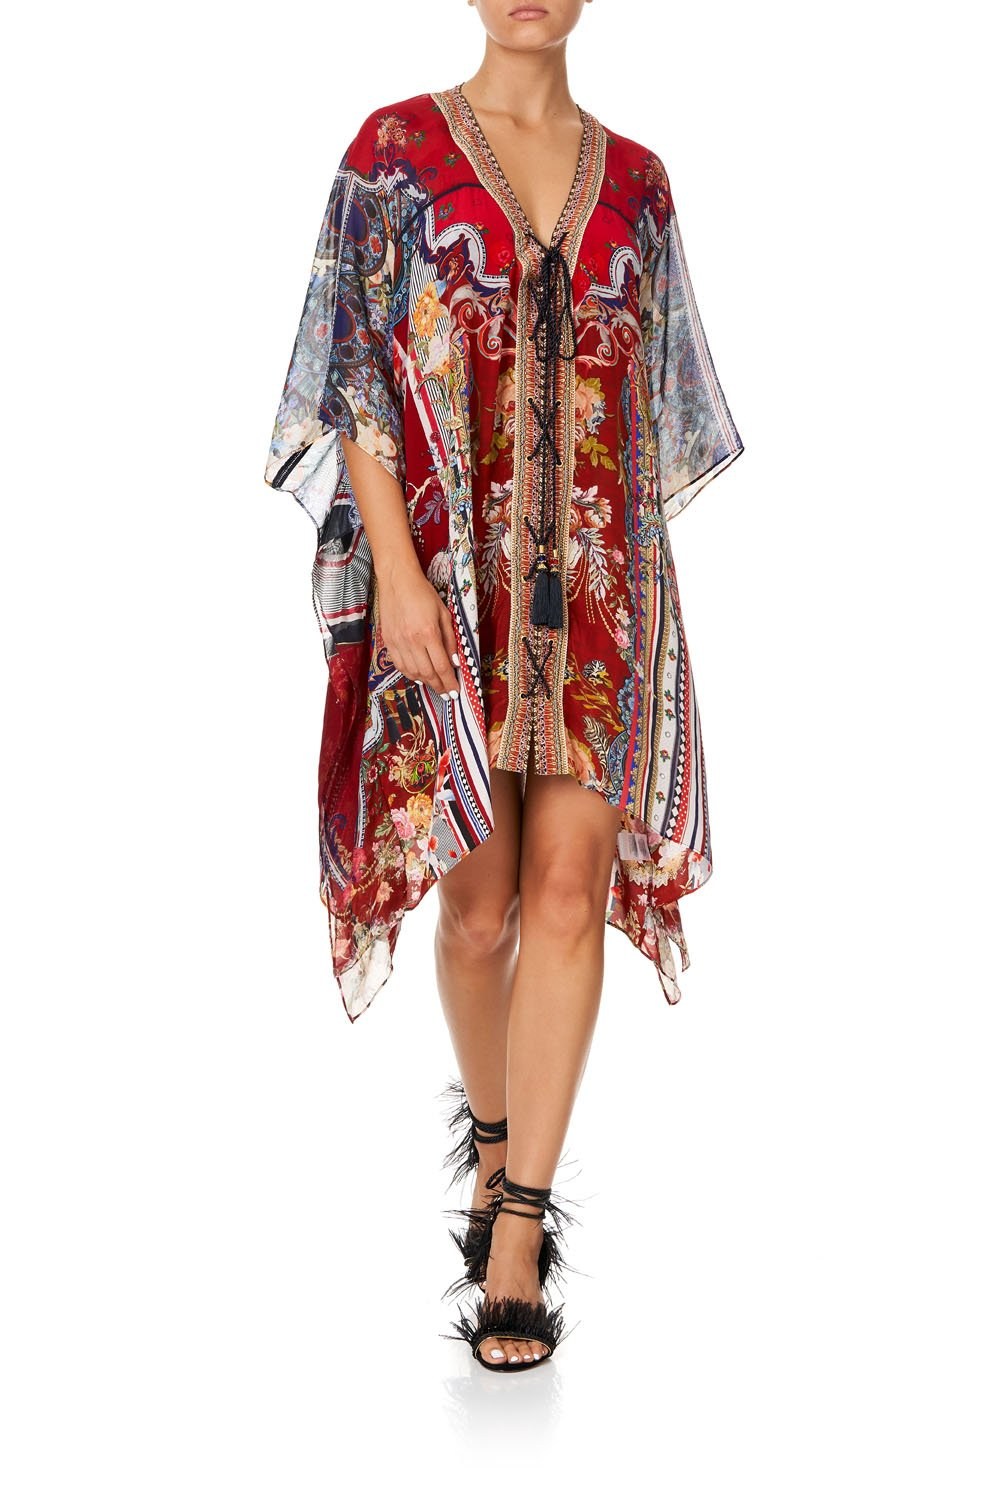 LACE UP KAFTAN WITH INSERT TRIM COSTUME PARTY